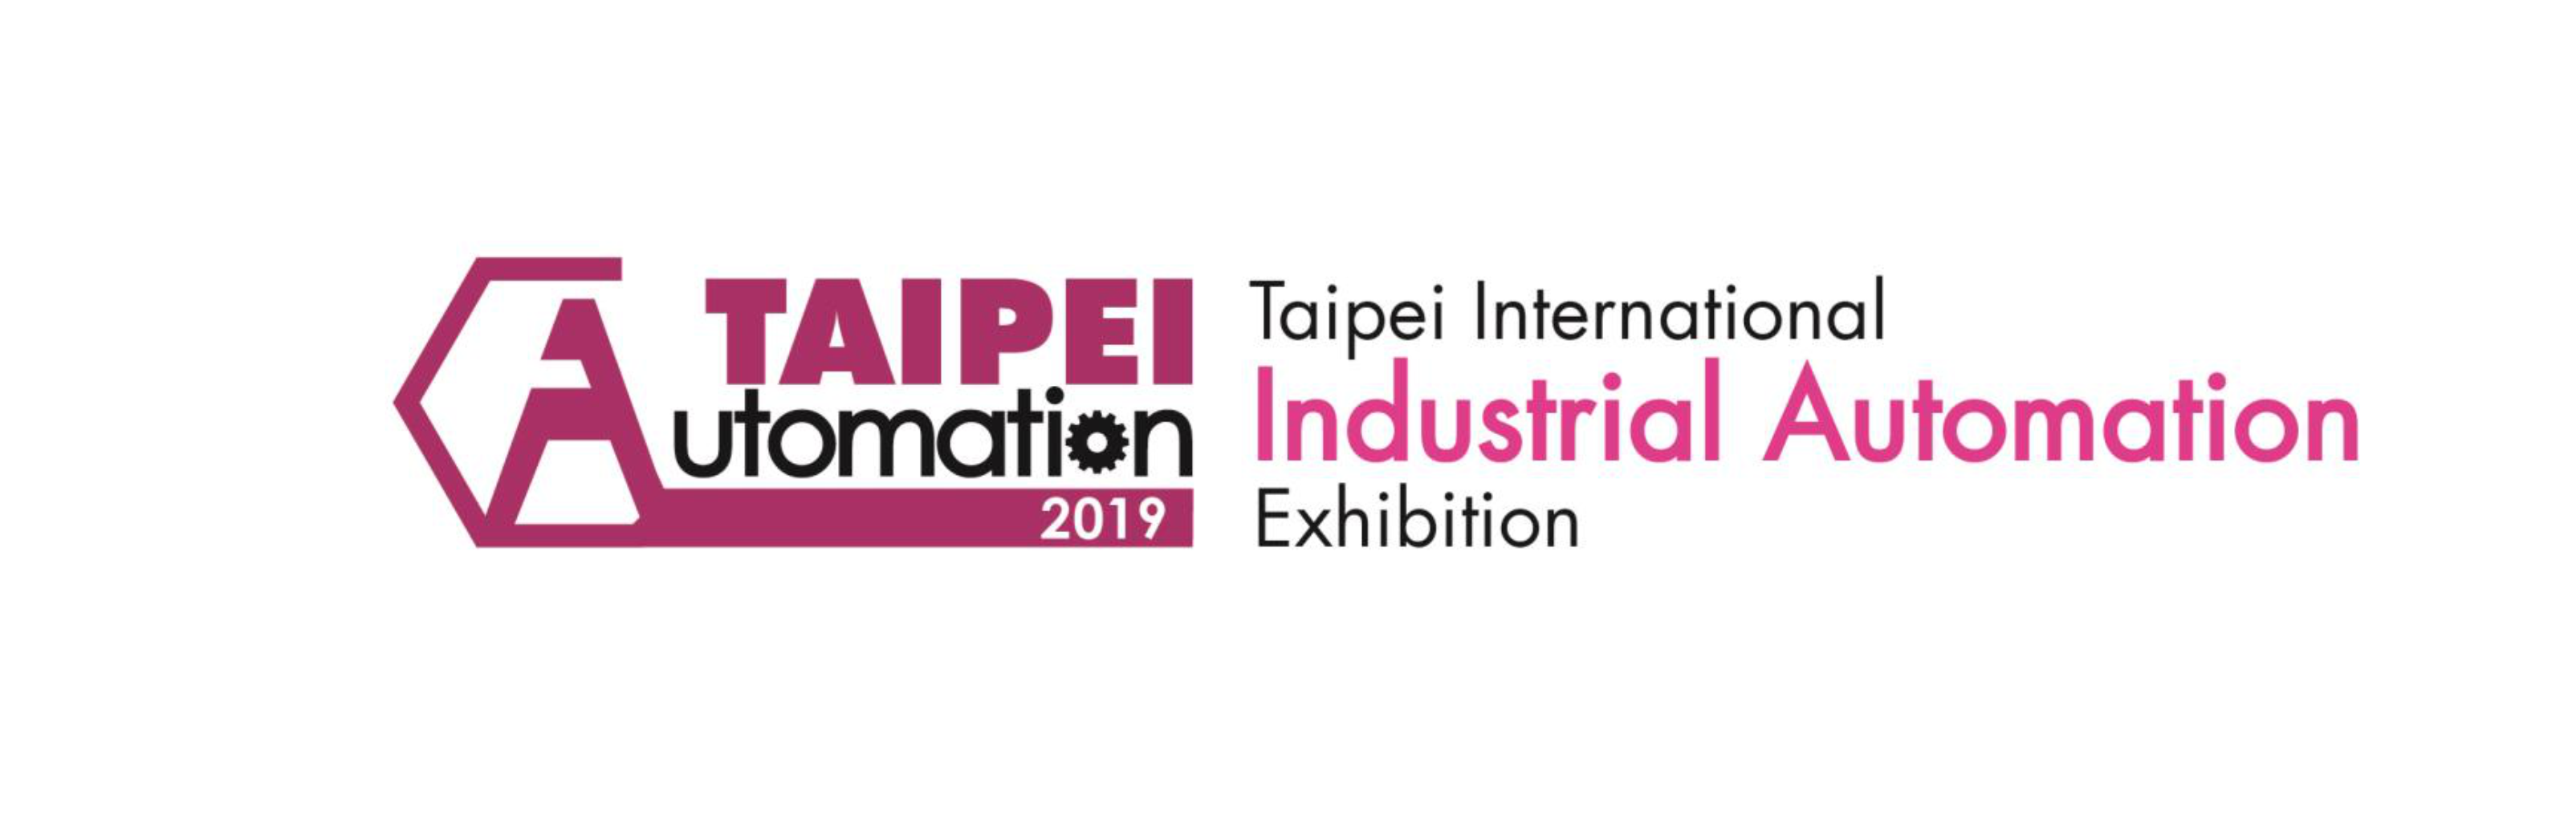 2019 Taipei Int'l Industrial Automation Exhibition